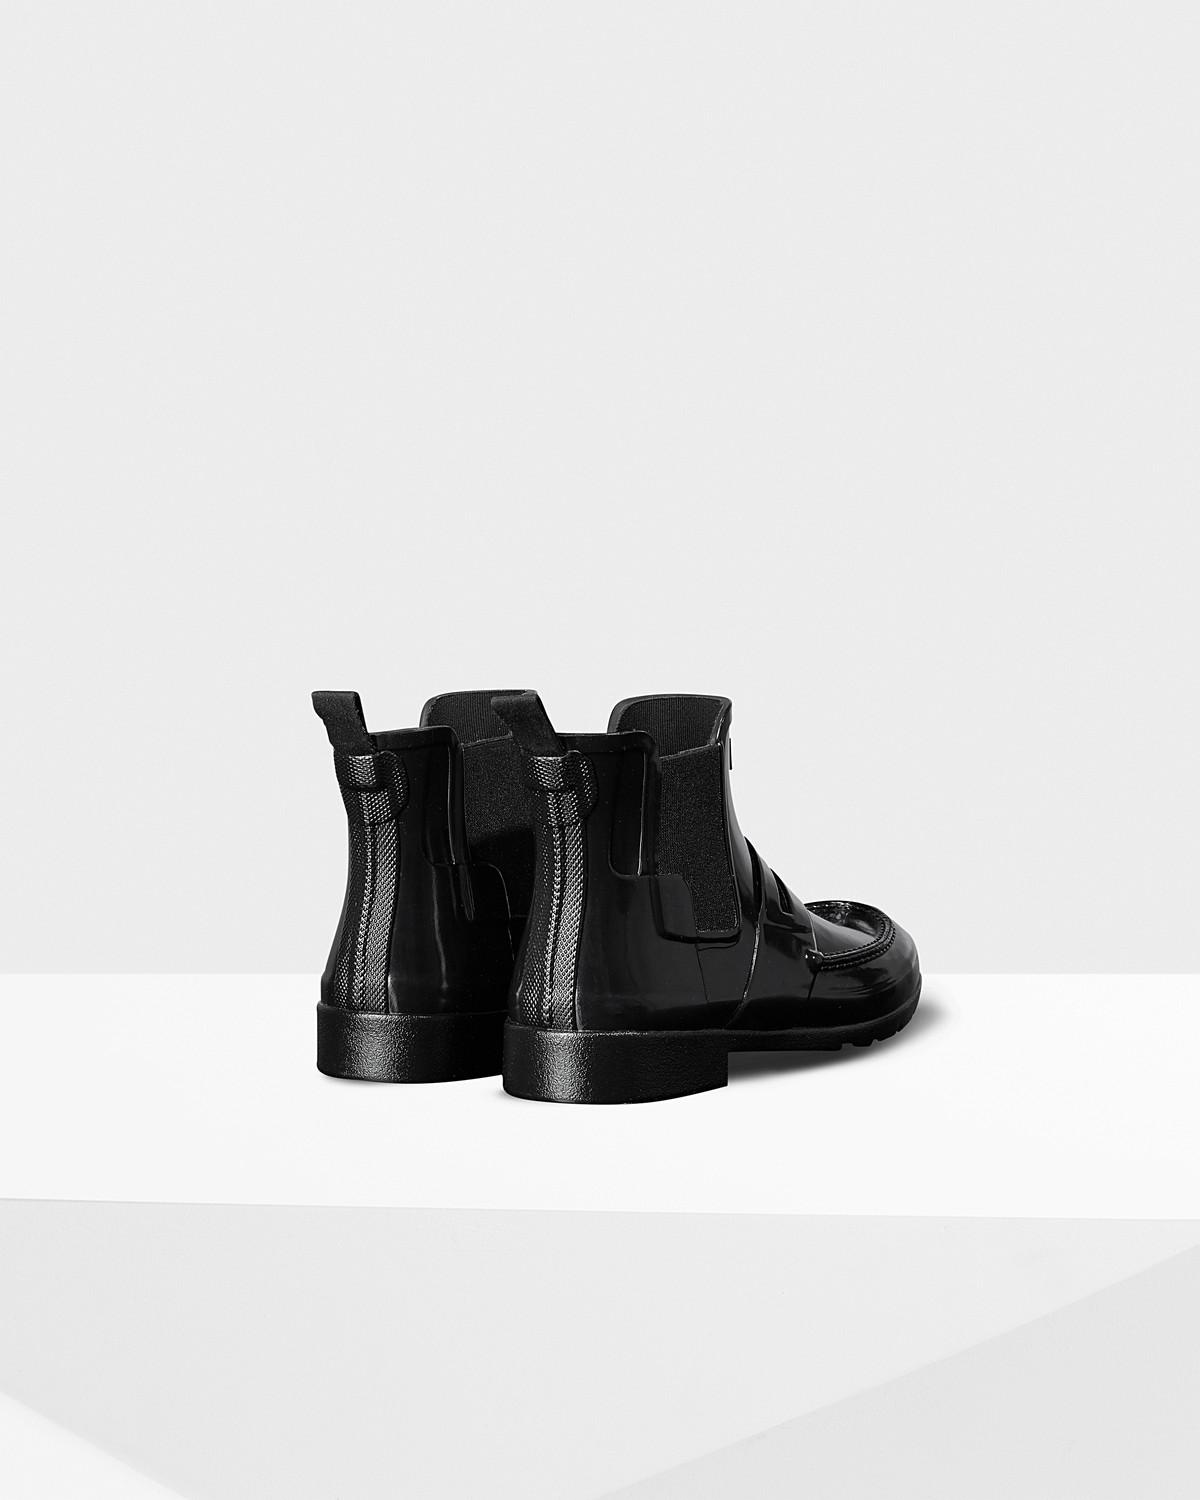 1d01a34a5a2 Lyst - HUNTER Women s Original Refined Penny Loafer Chelsea Boots in ...